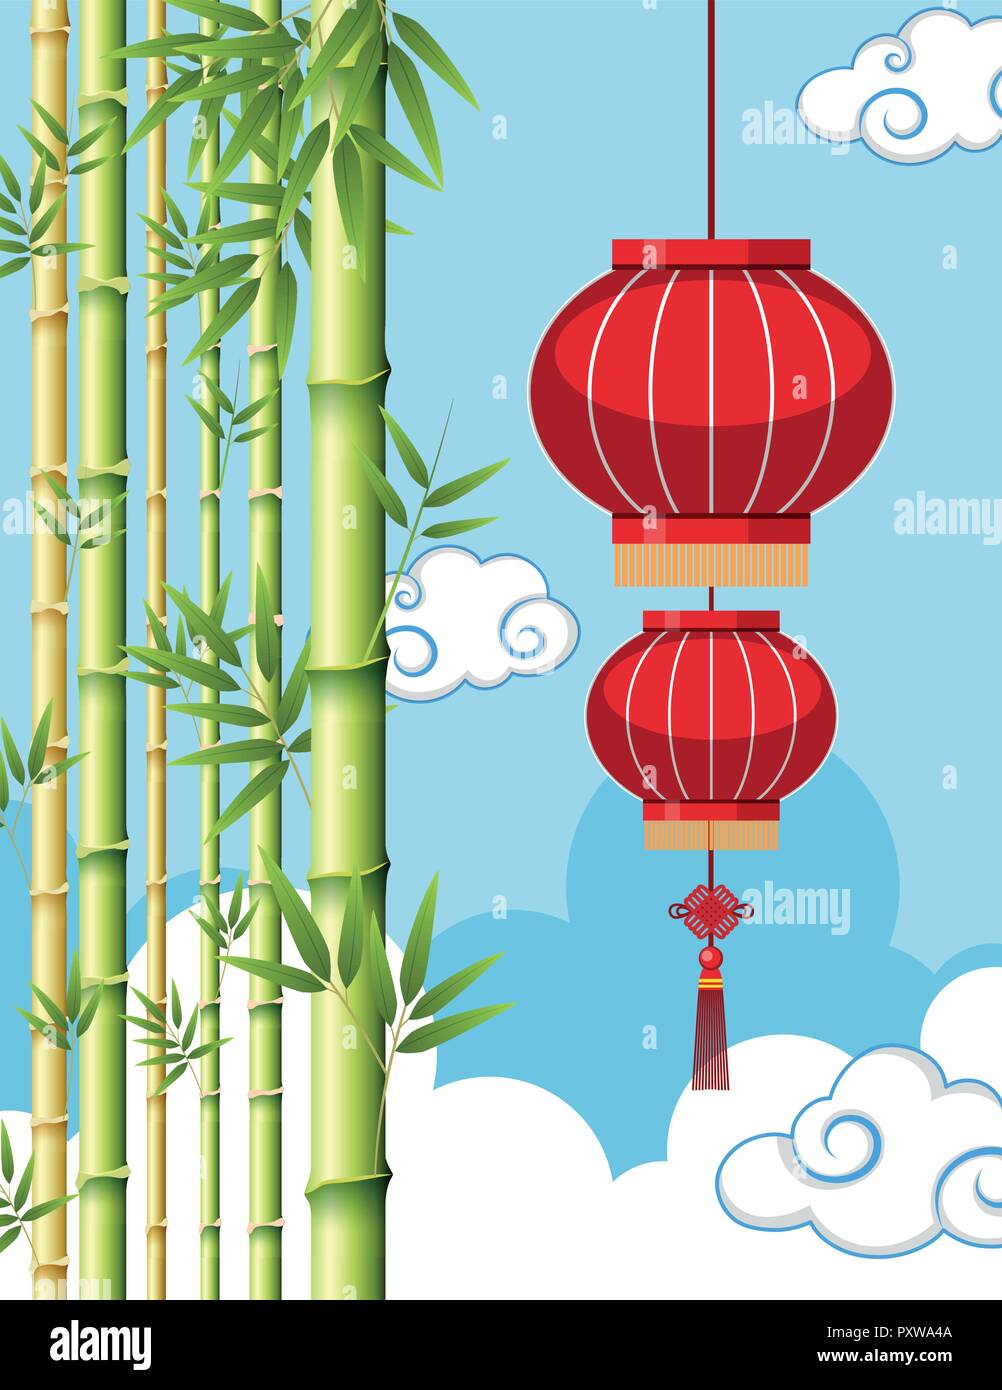 background template with chinese lantern and bamboo illustration